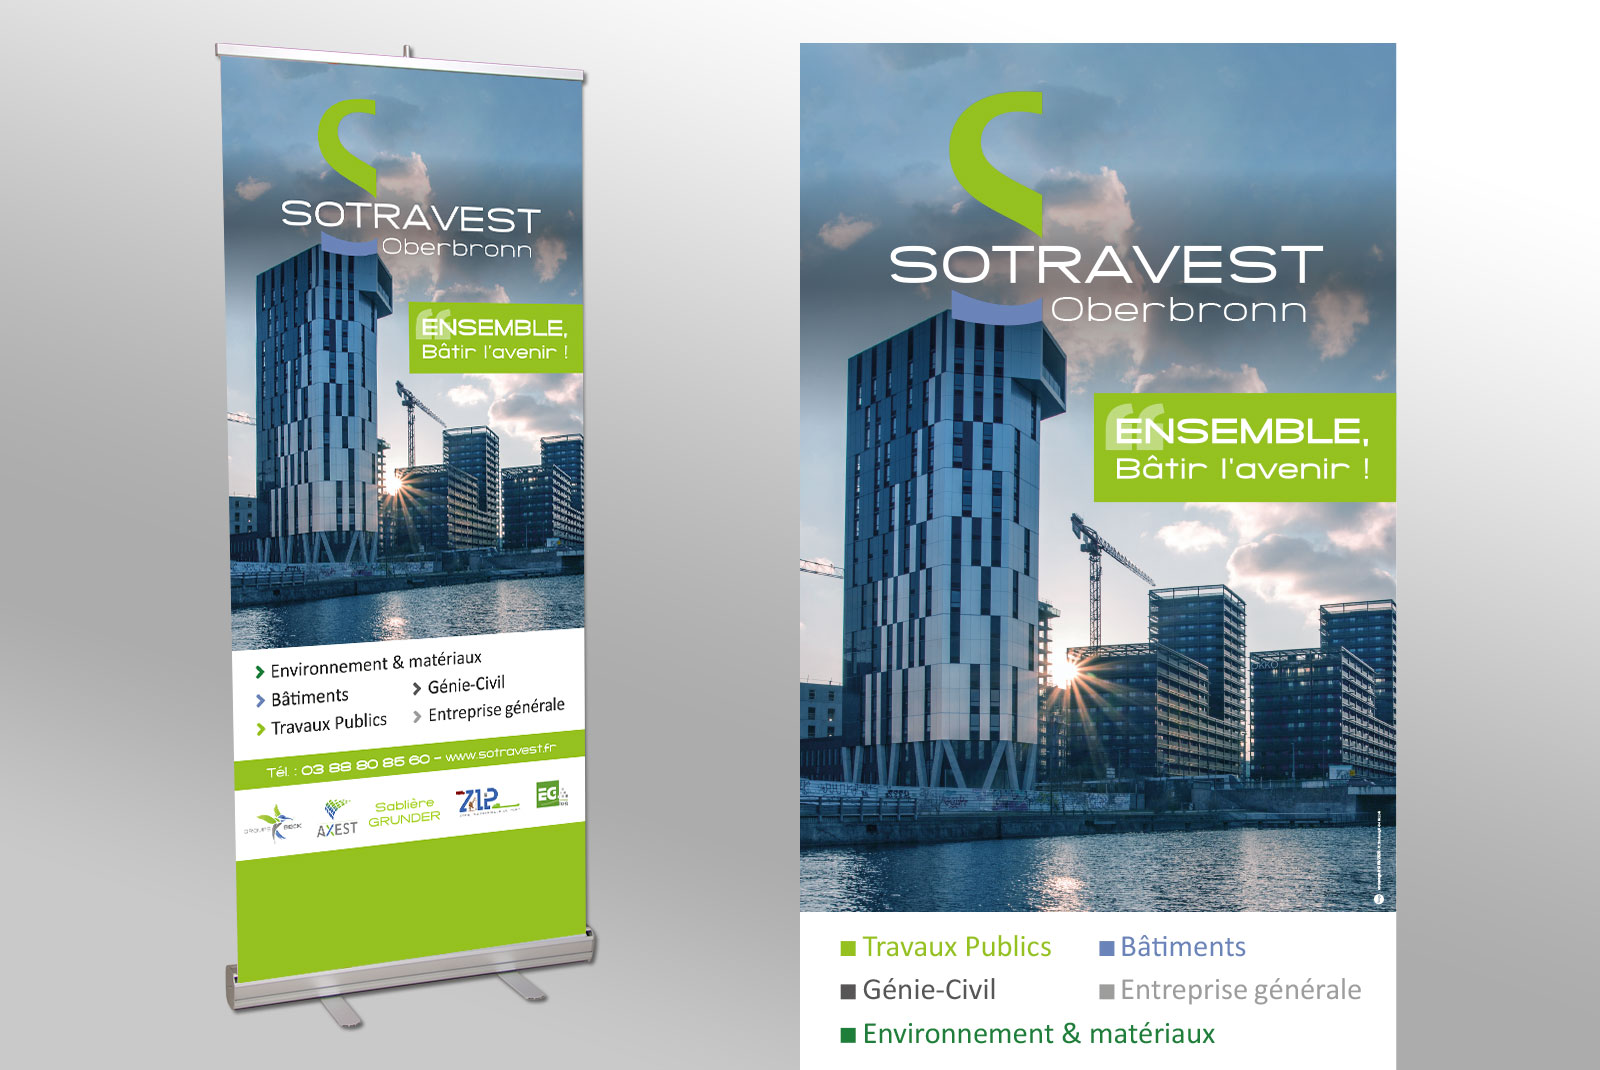 Rollup Sotravest